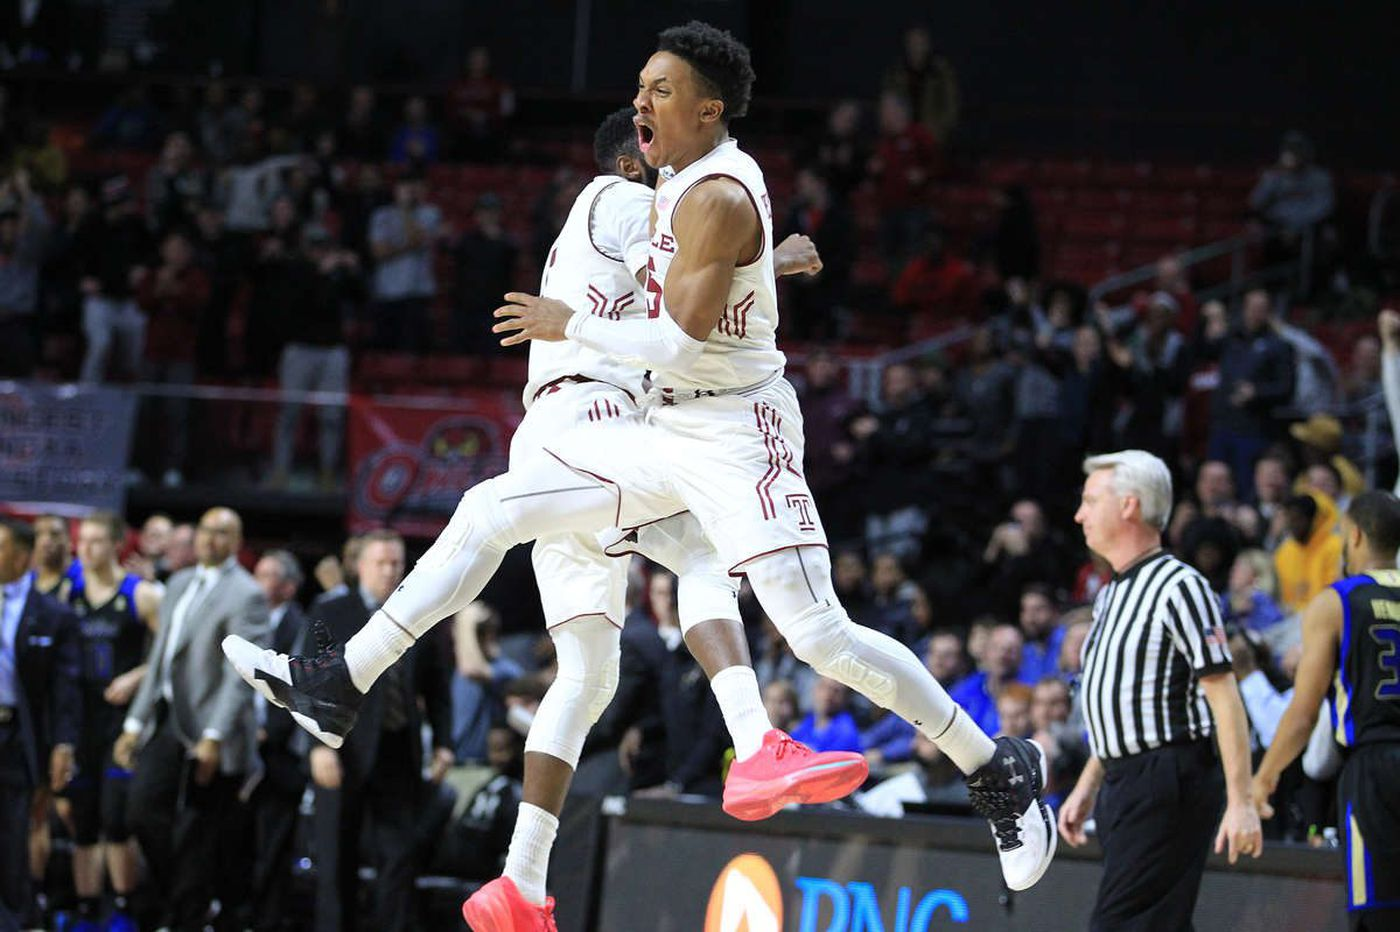 Temple edges Tulsa for a much-needed Liacouras Center win